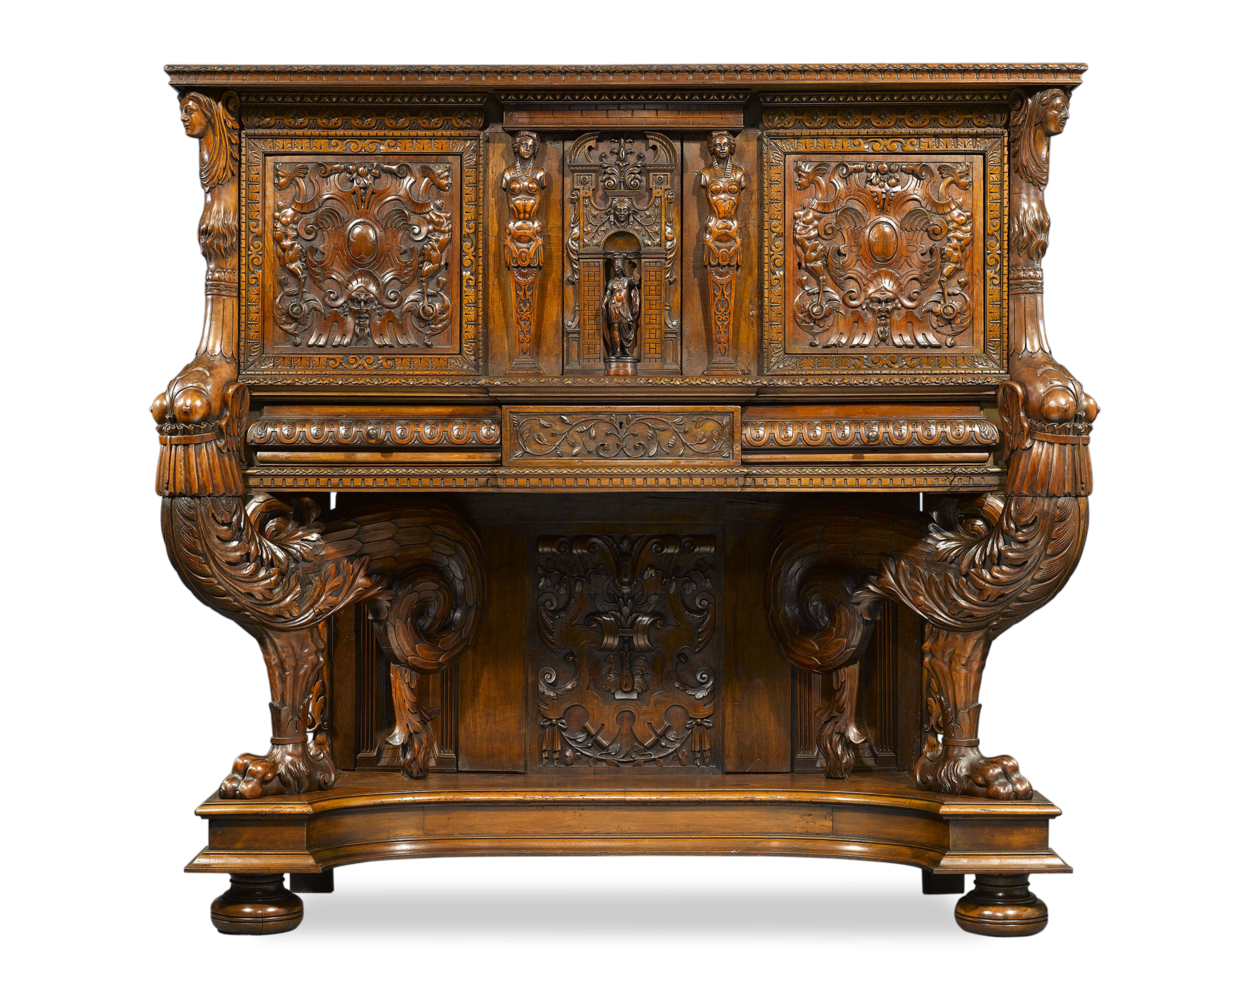 French Renaissance Png - Antique French Dresser/Sideboard; Renaissance-Period; Carved ...